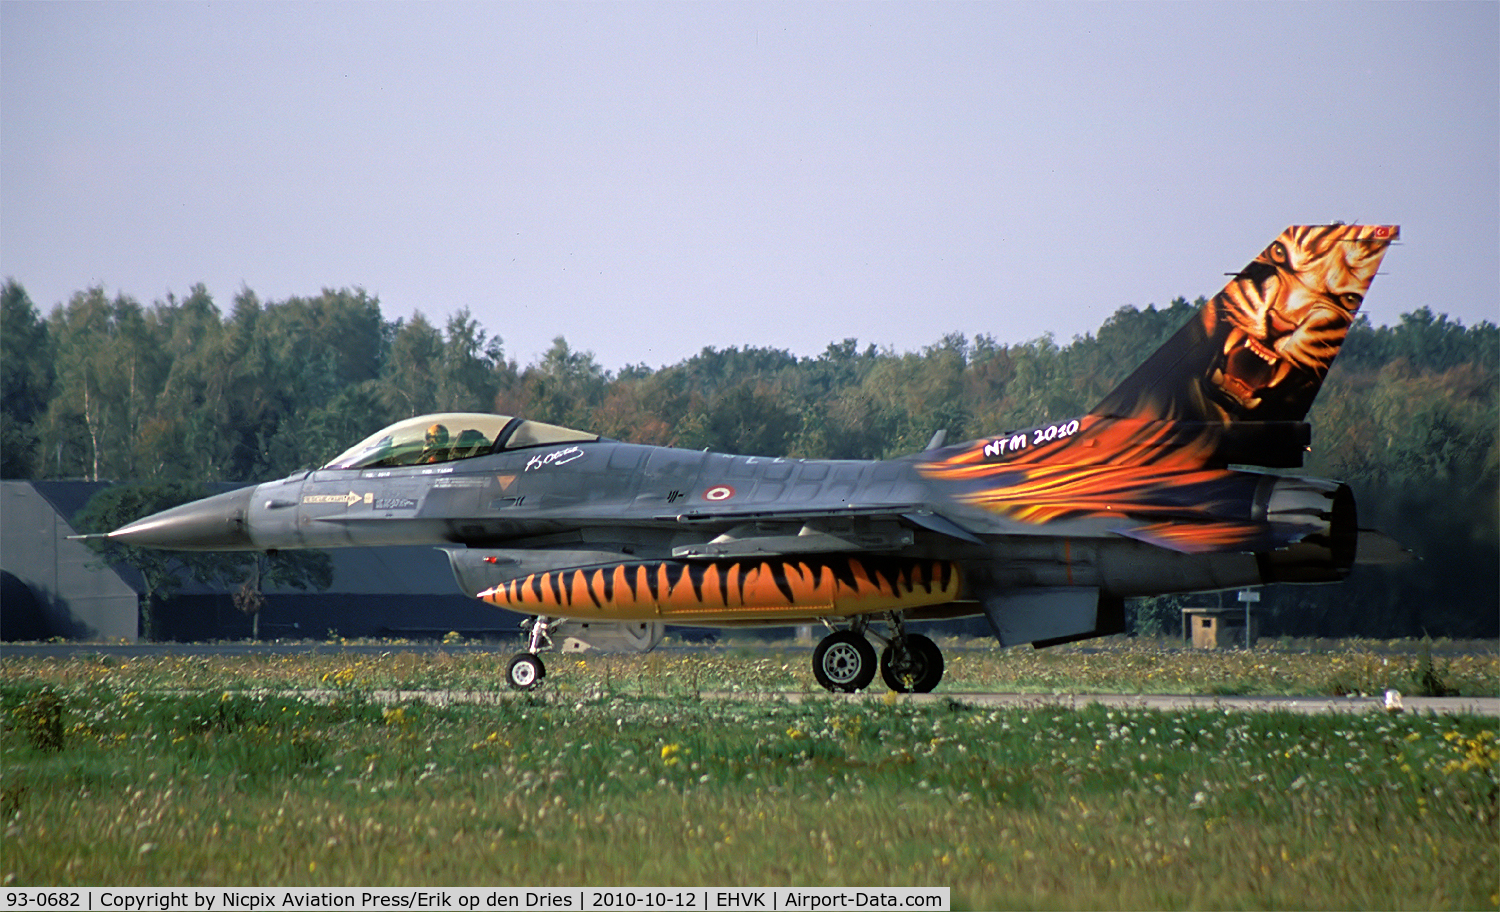 93-0682, TAI (Turkish Aerospace Industries) F-16C Fighting Falcon C/N HC-26, Turkish AF F-16C 93-0682 attended the 49th NTM at Volkel AB, The Netherlands.